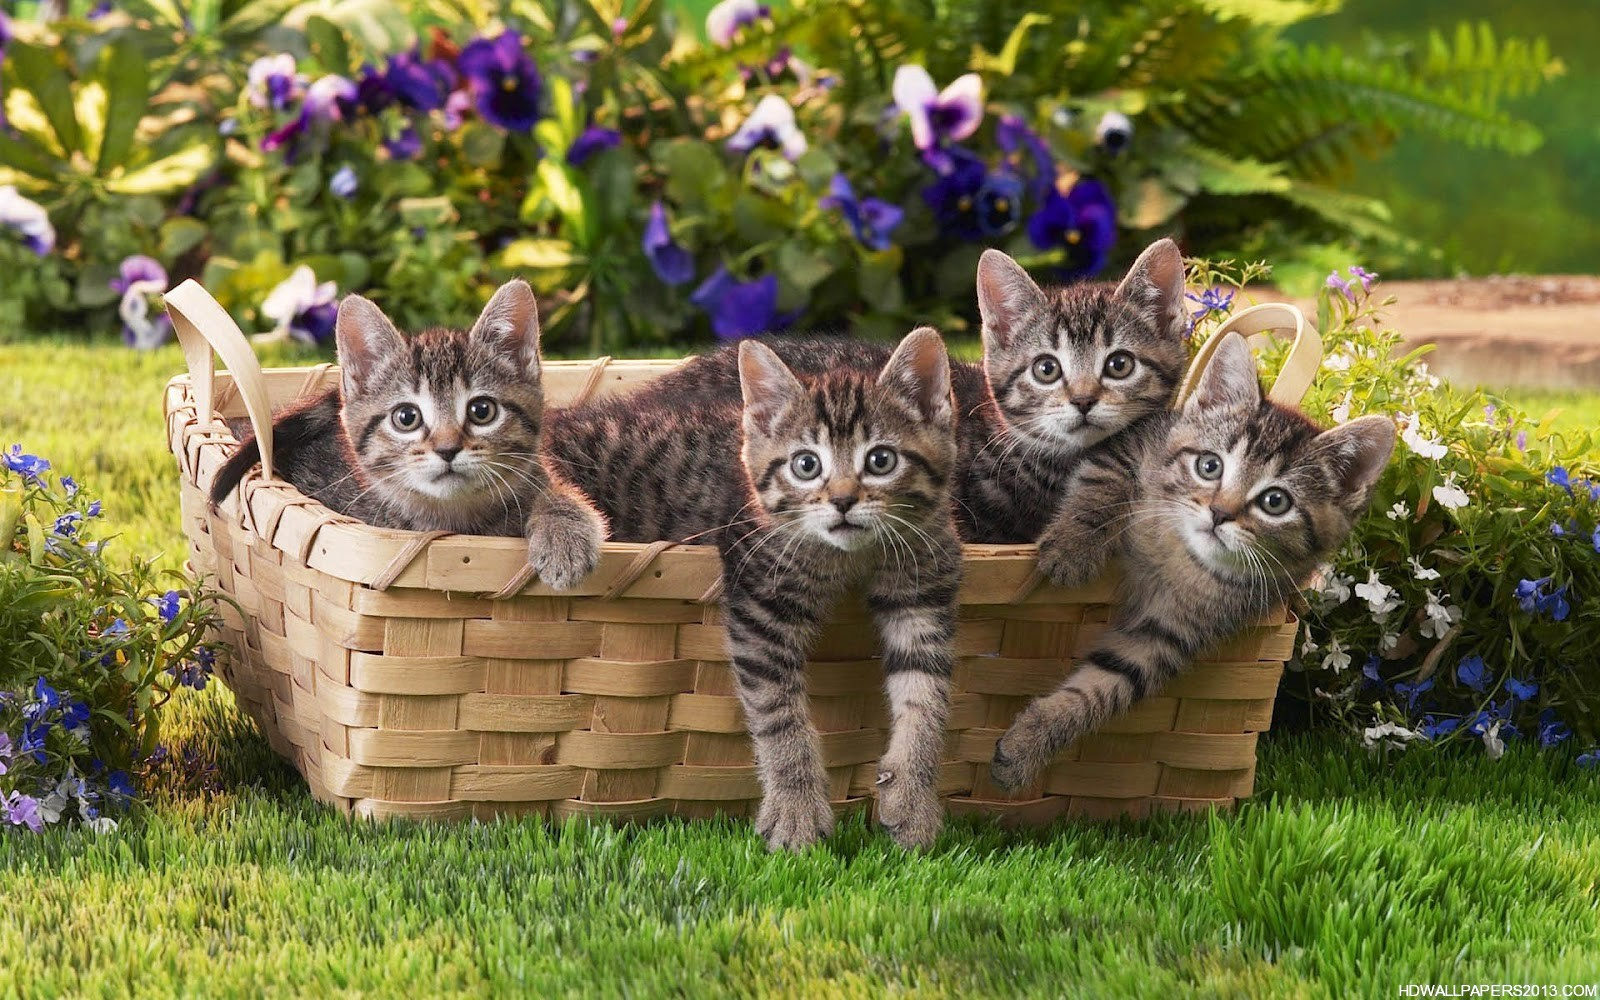 Cats Wallpaper free Download | High Definition Wallpapers, High